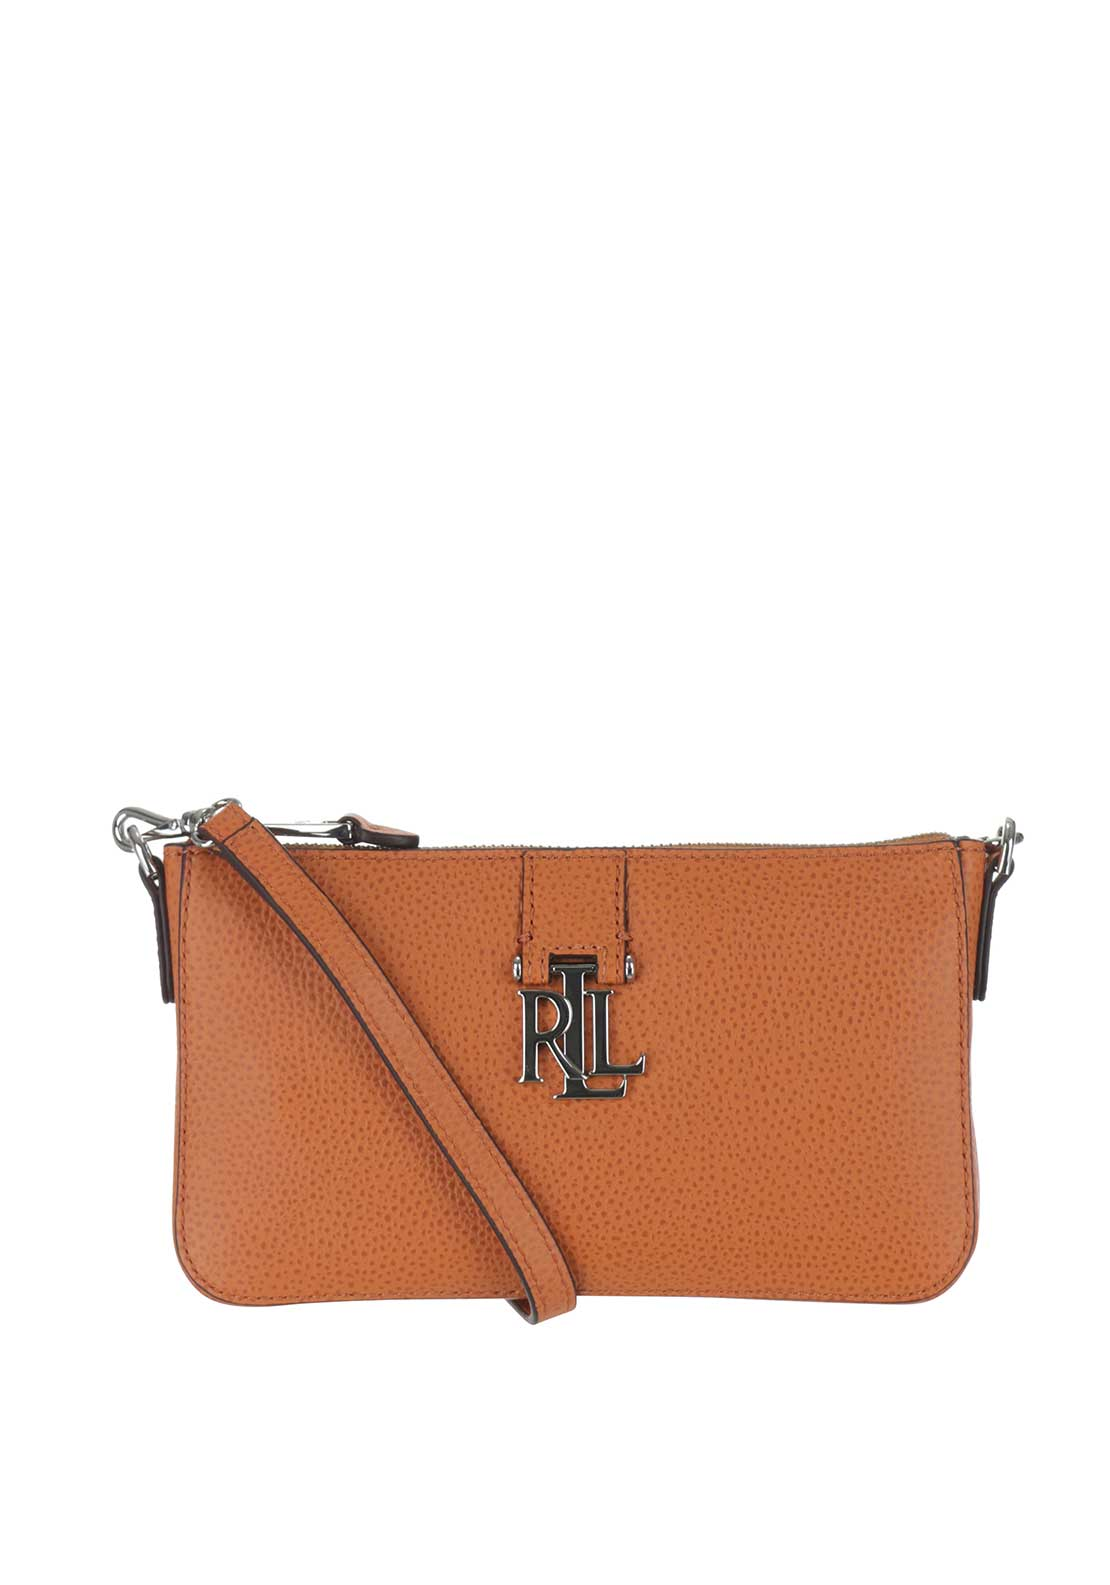 Lauren Ralph Lauren Leather Pam Shoulder Bag, Monarch Orange